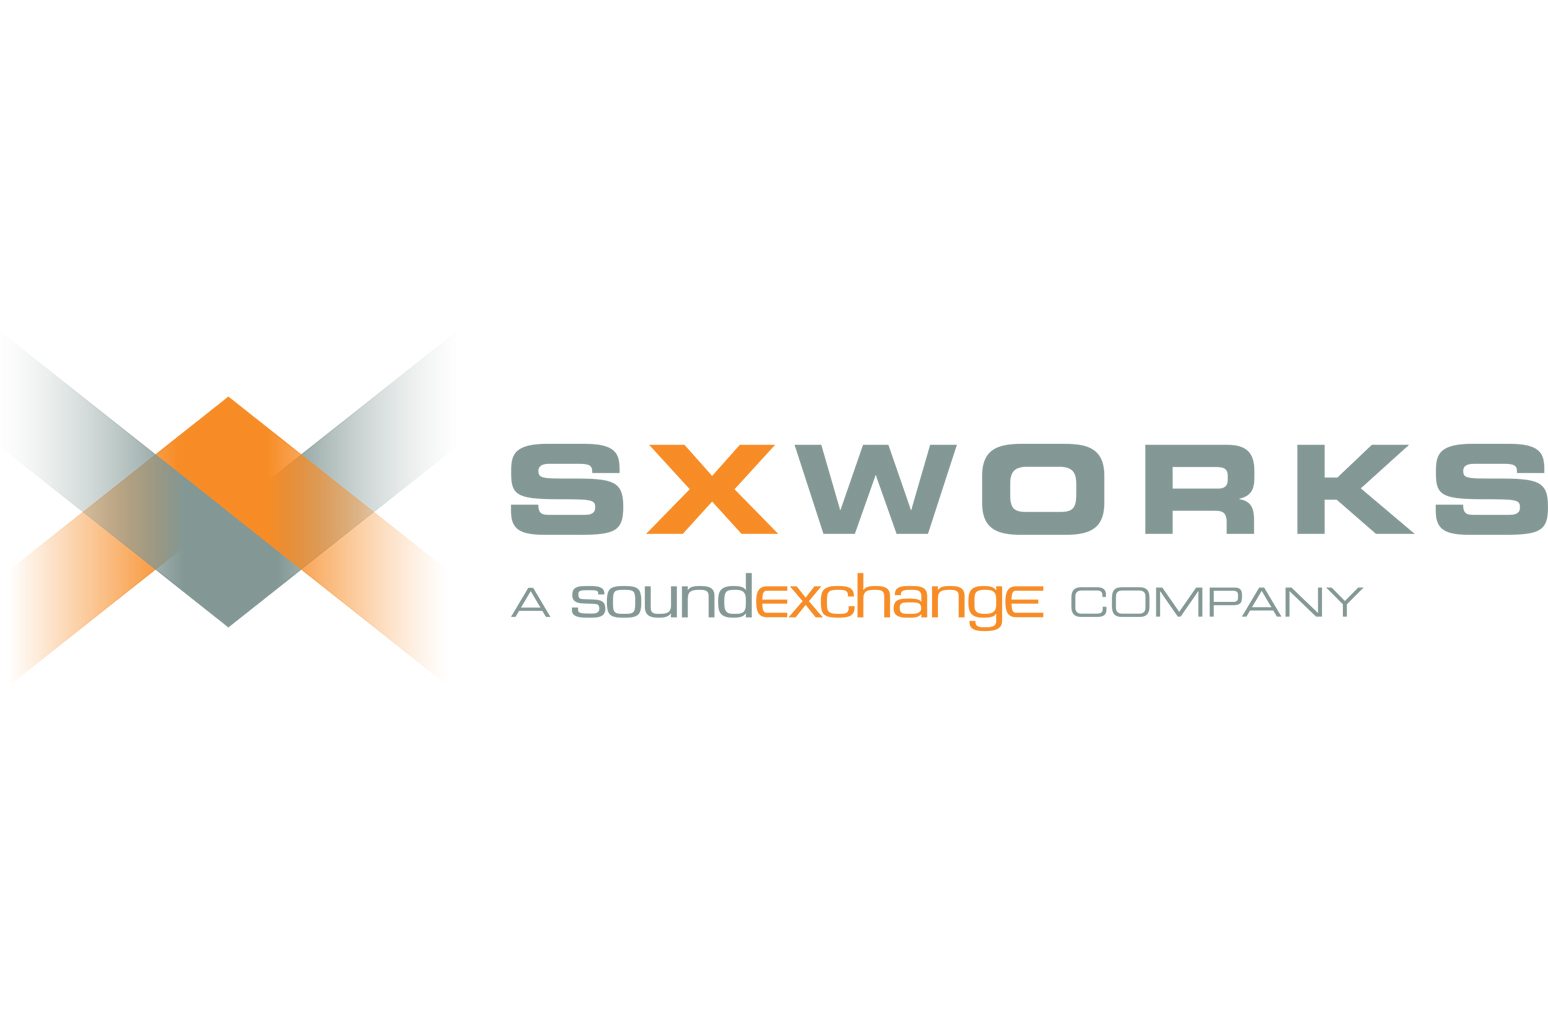 Soundexchange Spreadsheet Throughout Soundexchange's Sxworks: Searching For Unclaimed Royalties Is About